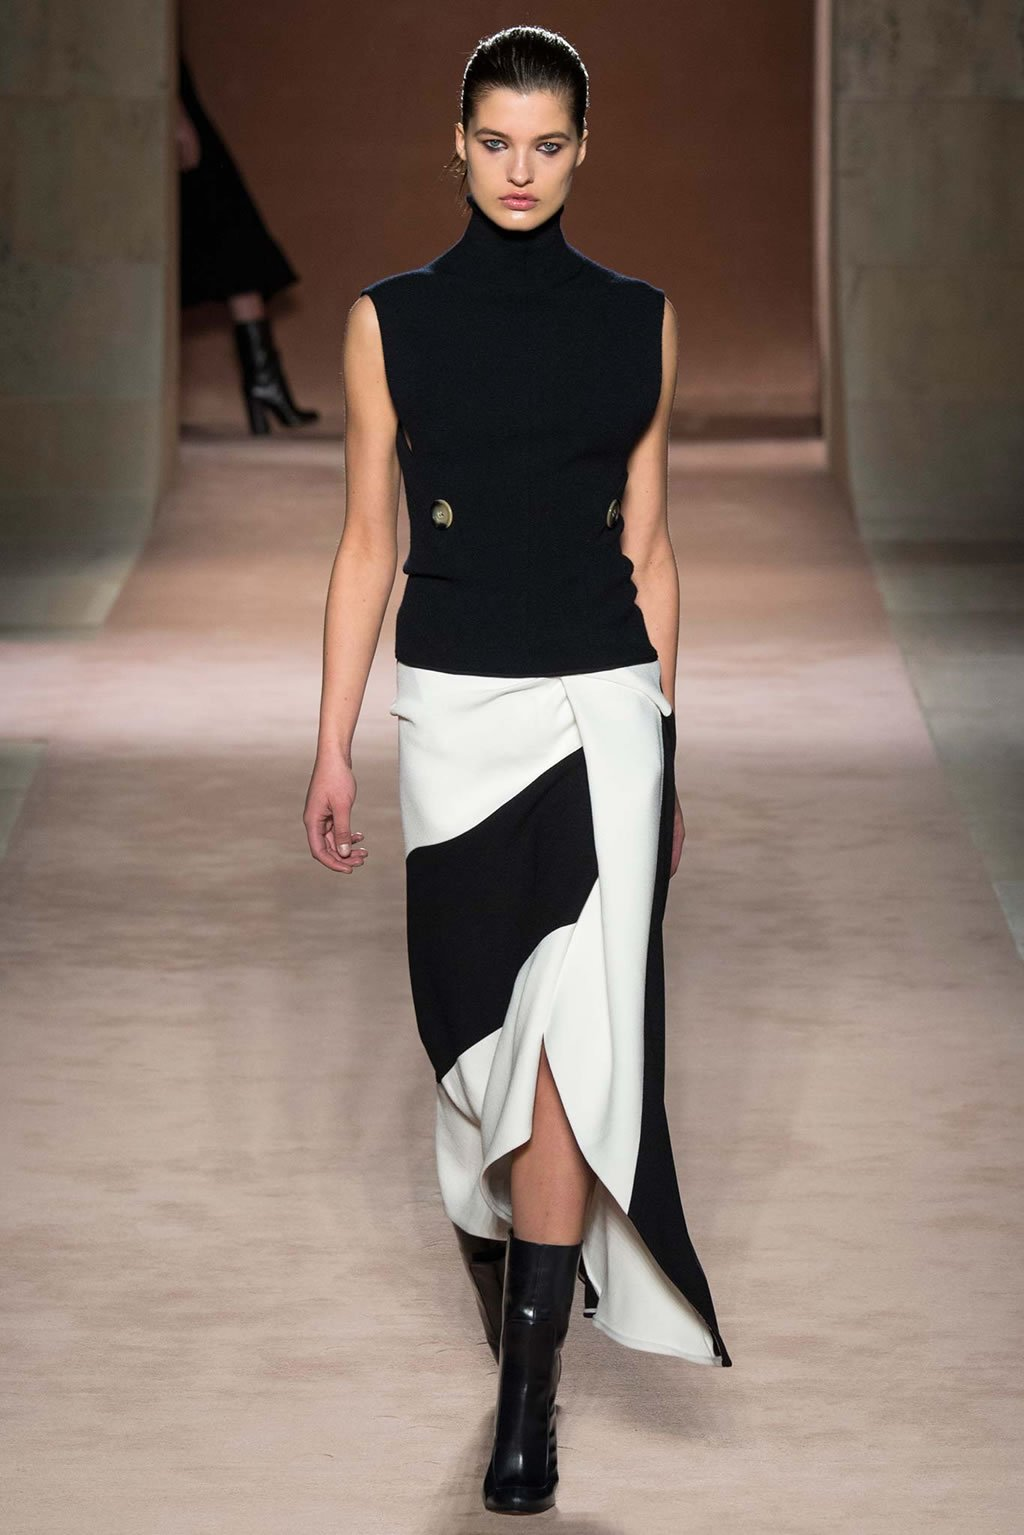 Victoria Beckham amps up the sex appeal in her new Fall ...